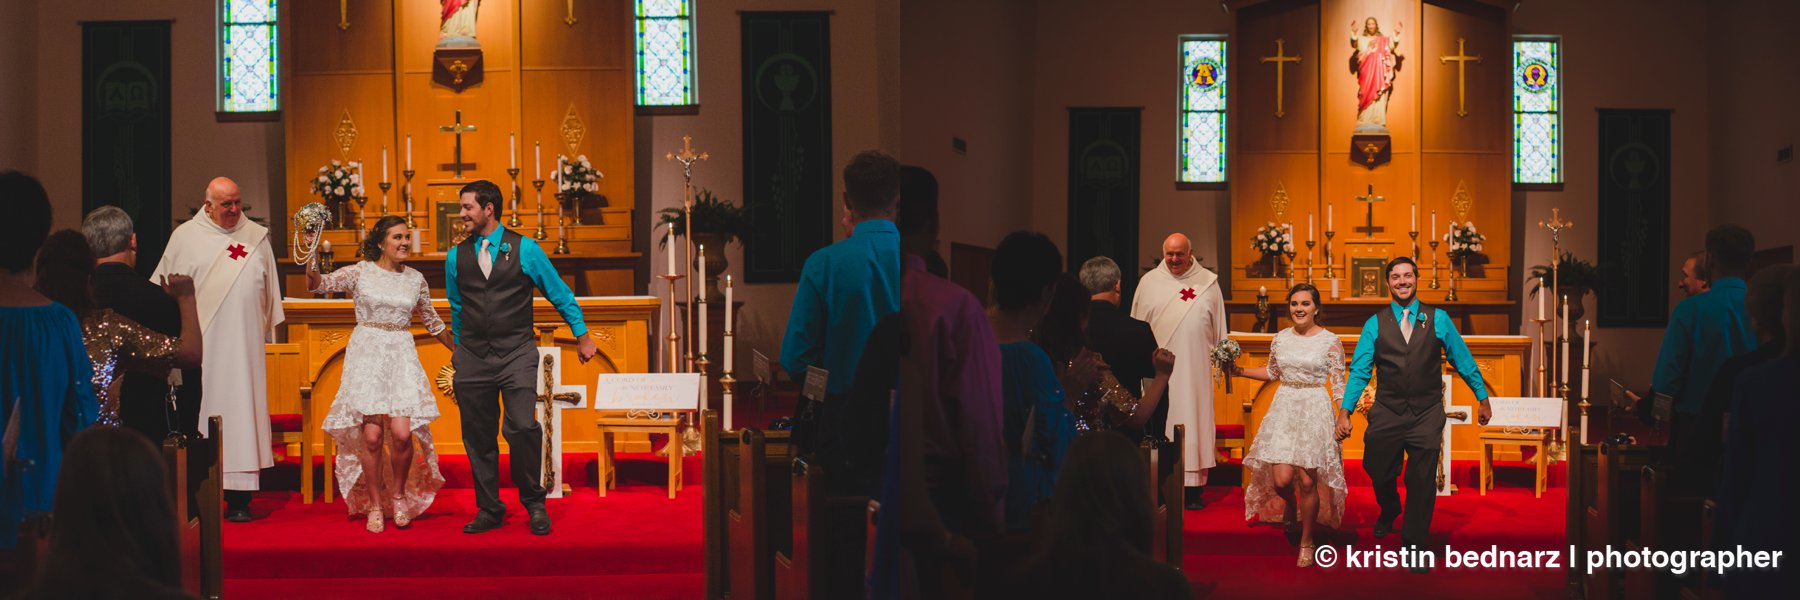 The ceremony was the prefect mix of seriousness and fun.  So much joy in that church that day!  So happy for these two!